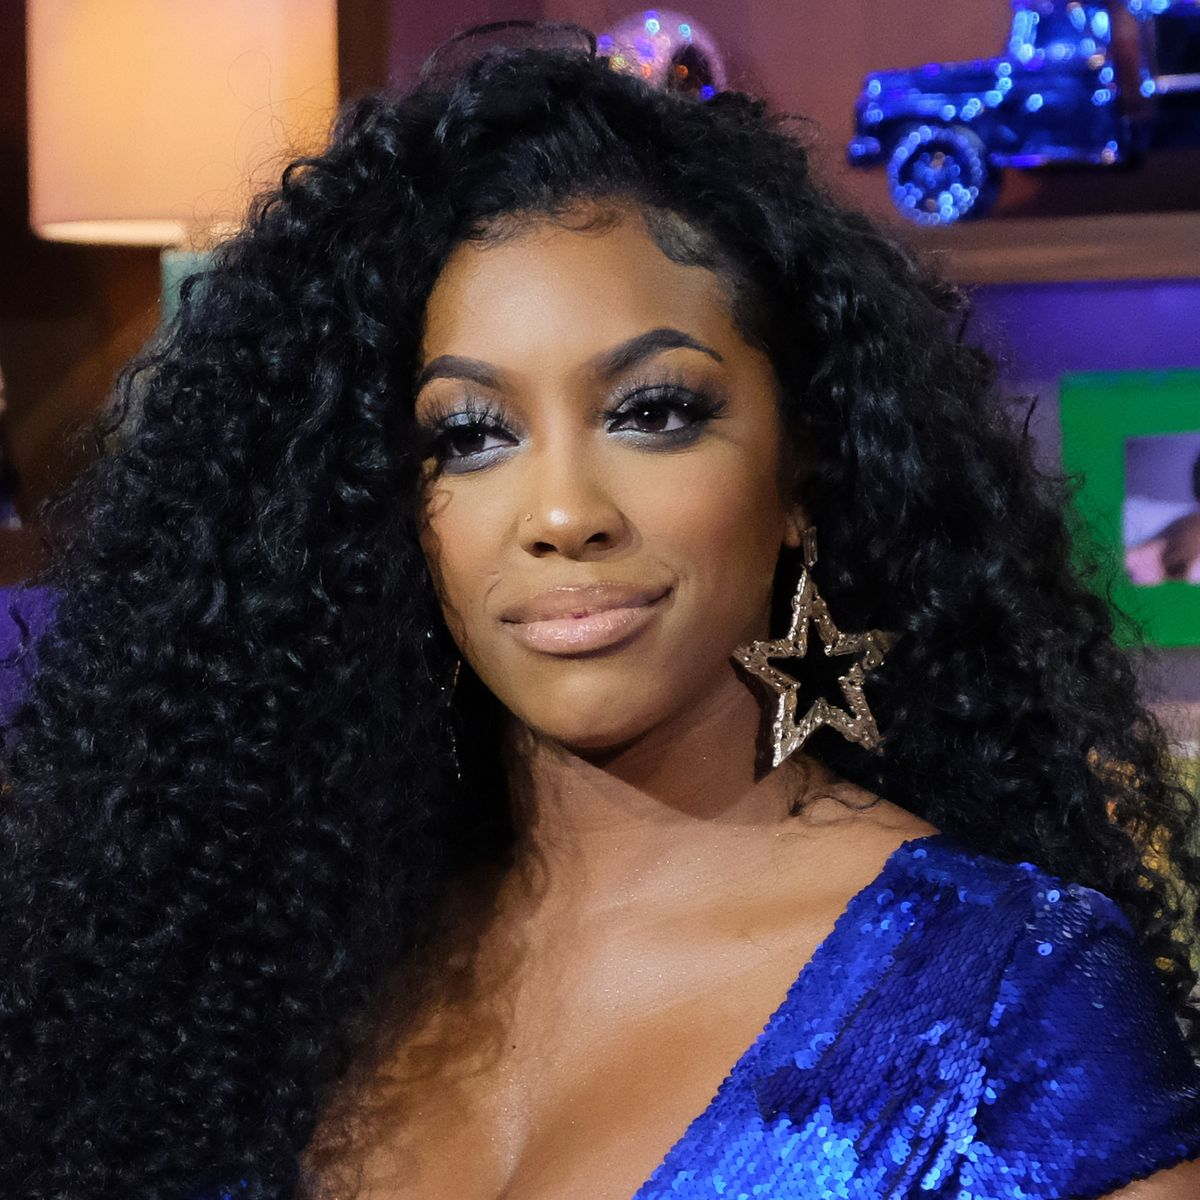 Porsha Williams Reveals Fans What She Is Craving For These Days